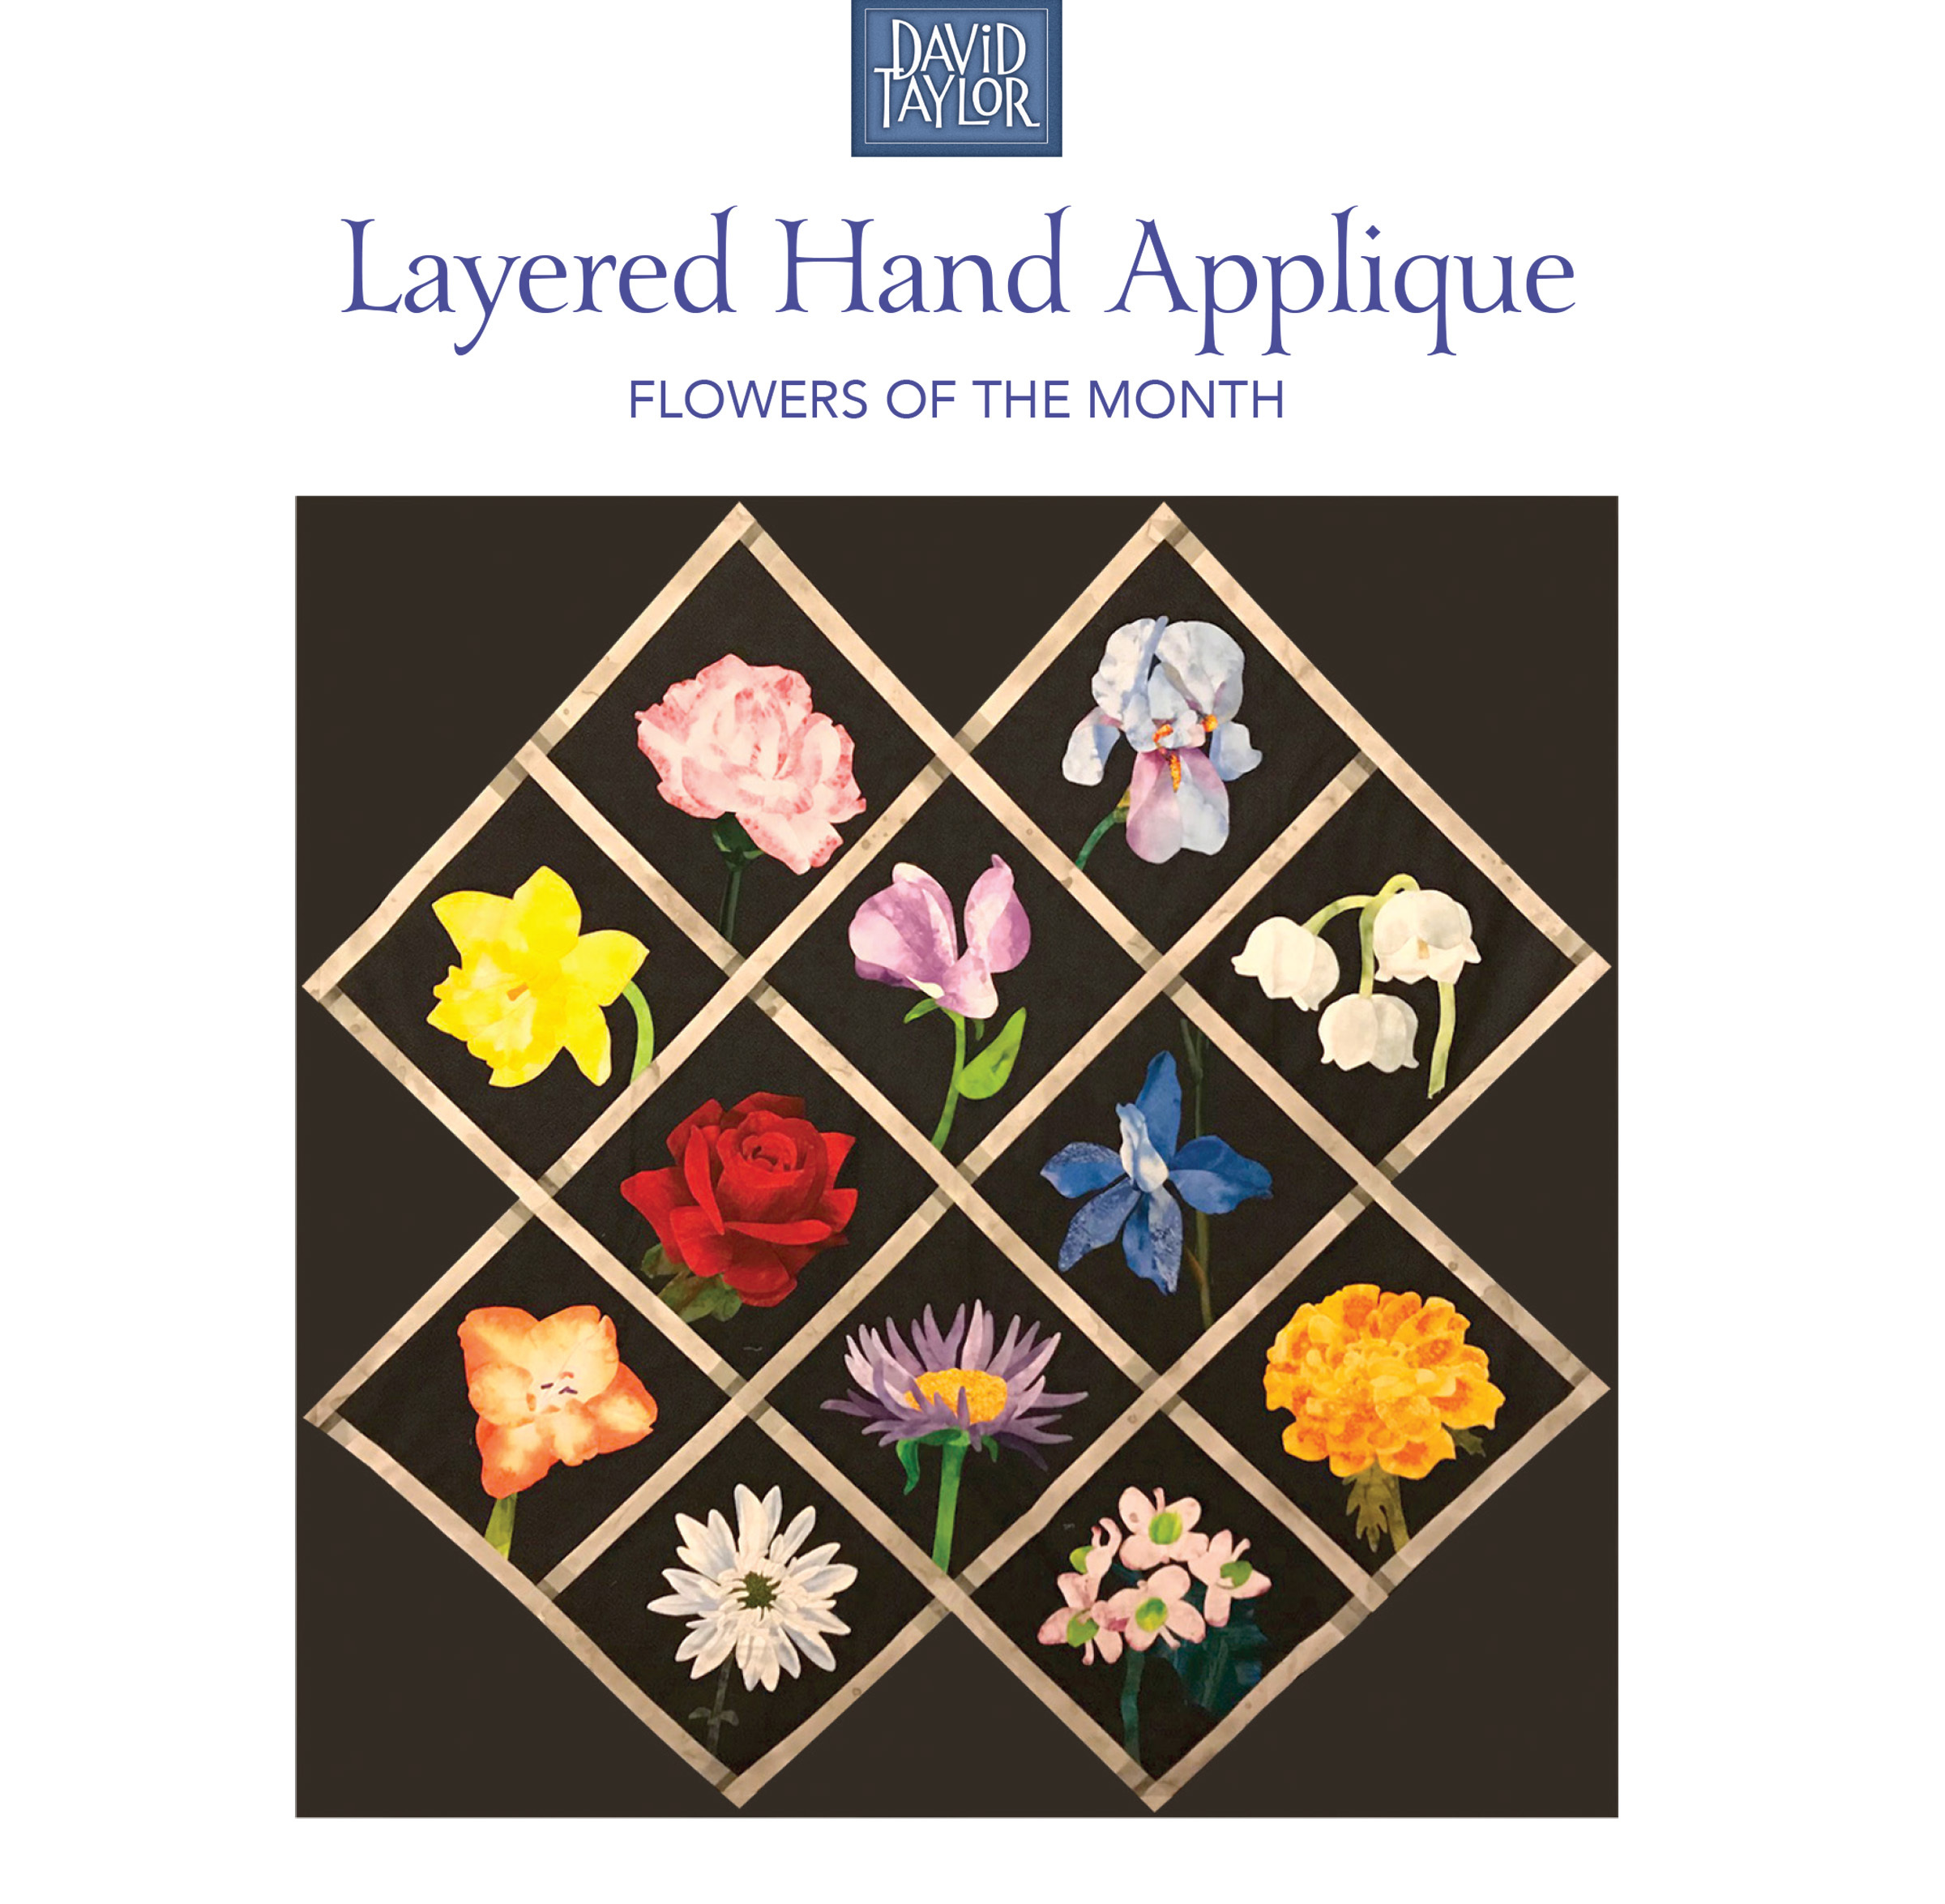 Layered Hand Applique with David Taylor 50293